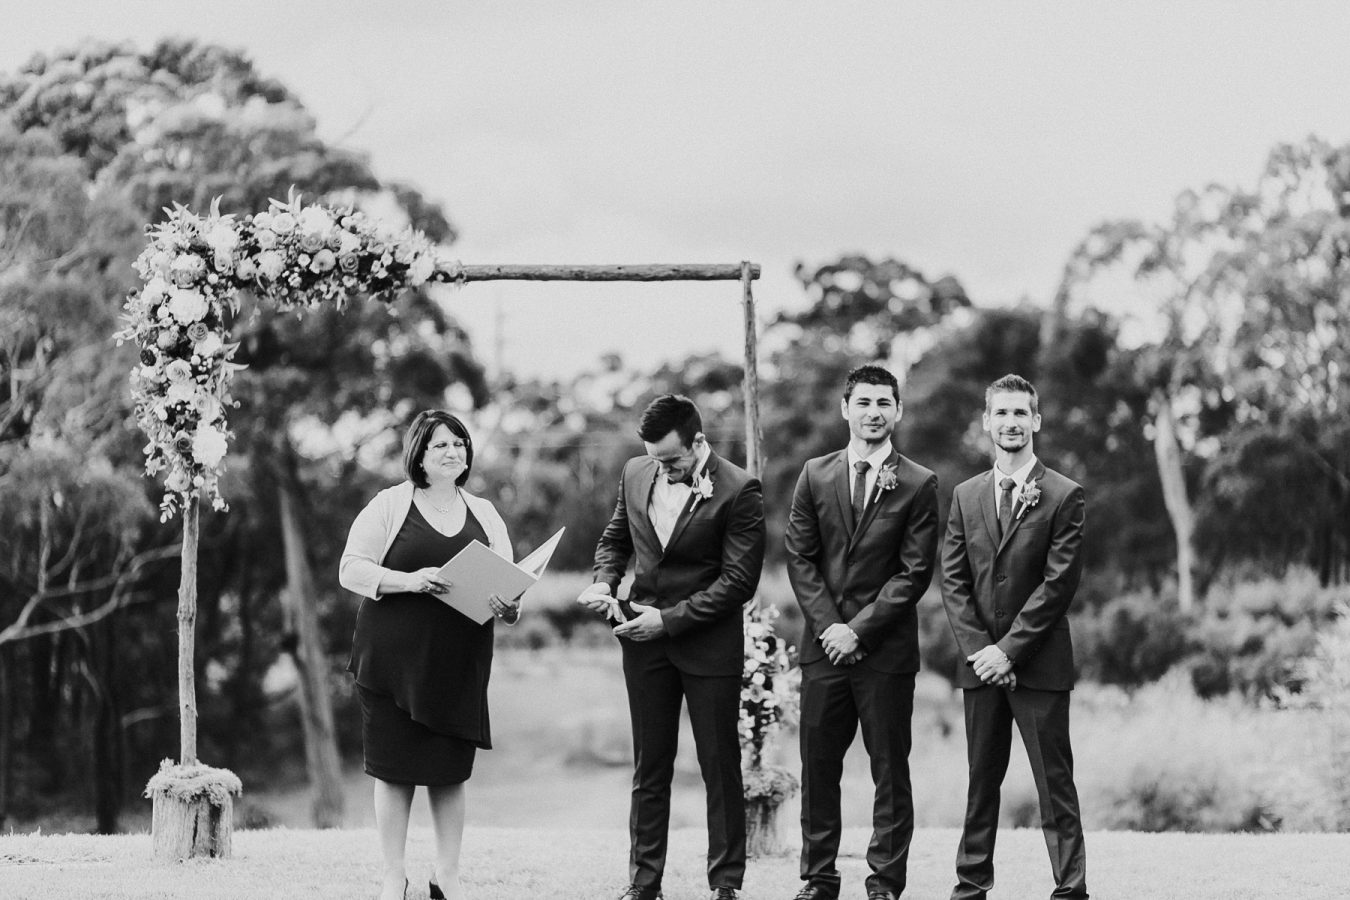 Courtney-Josh-Growwild-Bowral-southernhighlans-Wedding-44